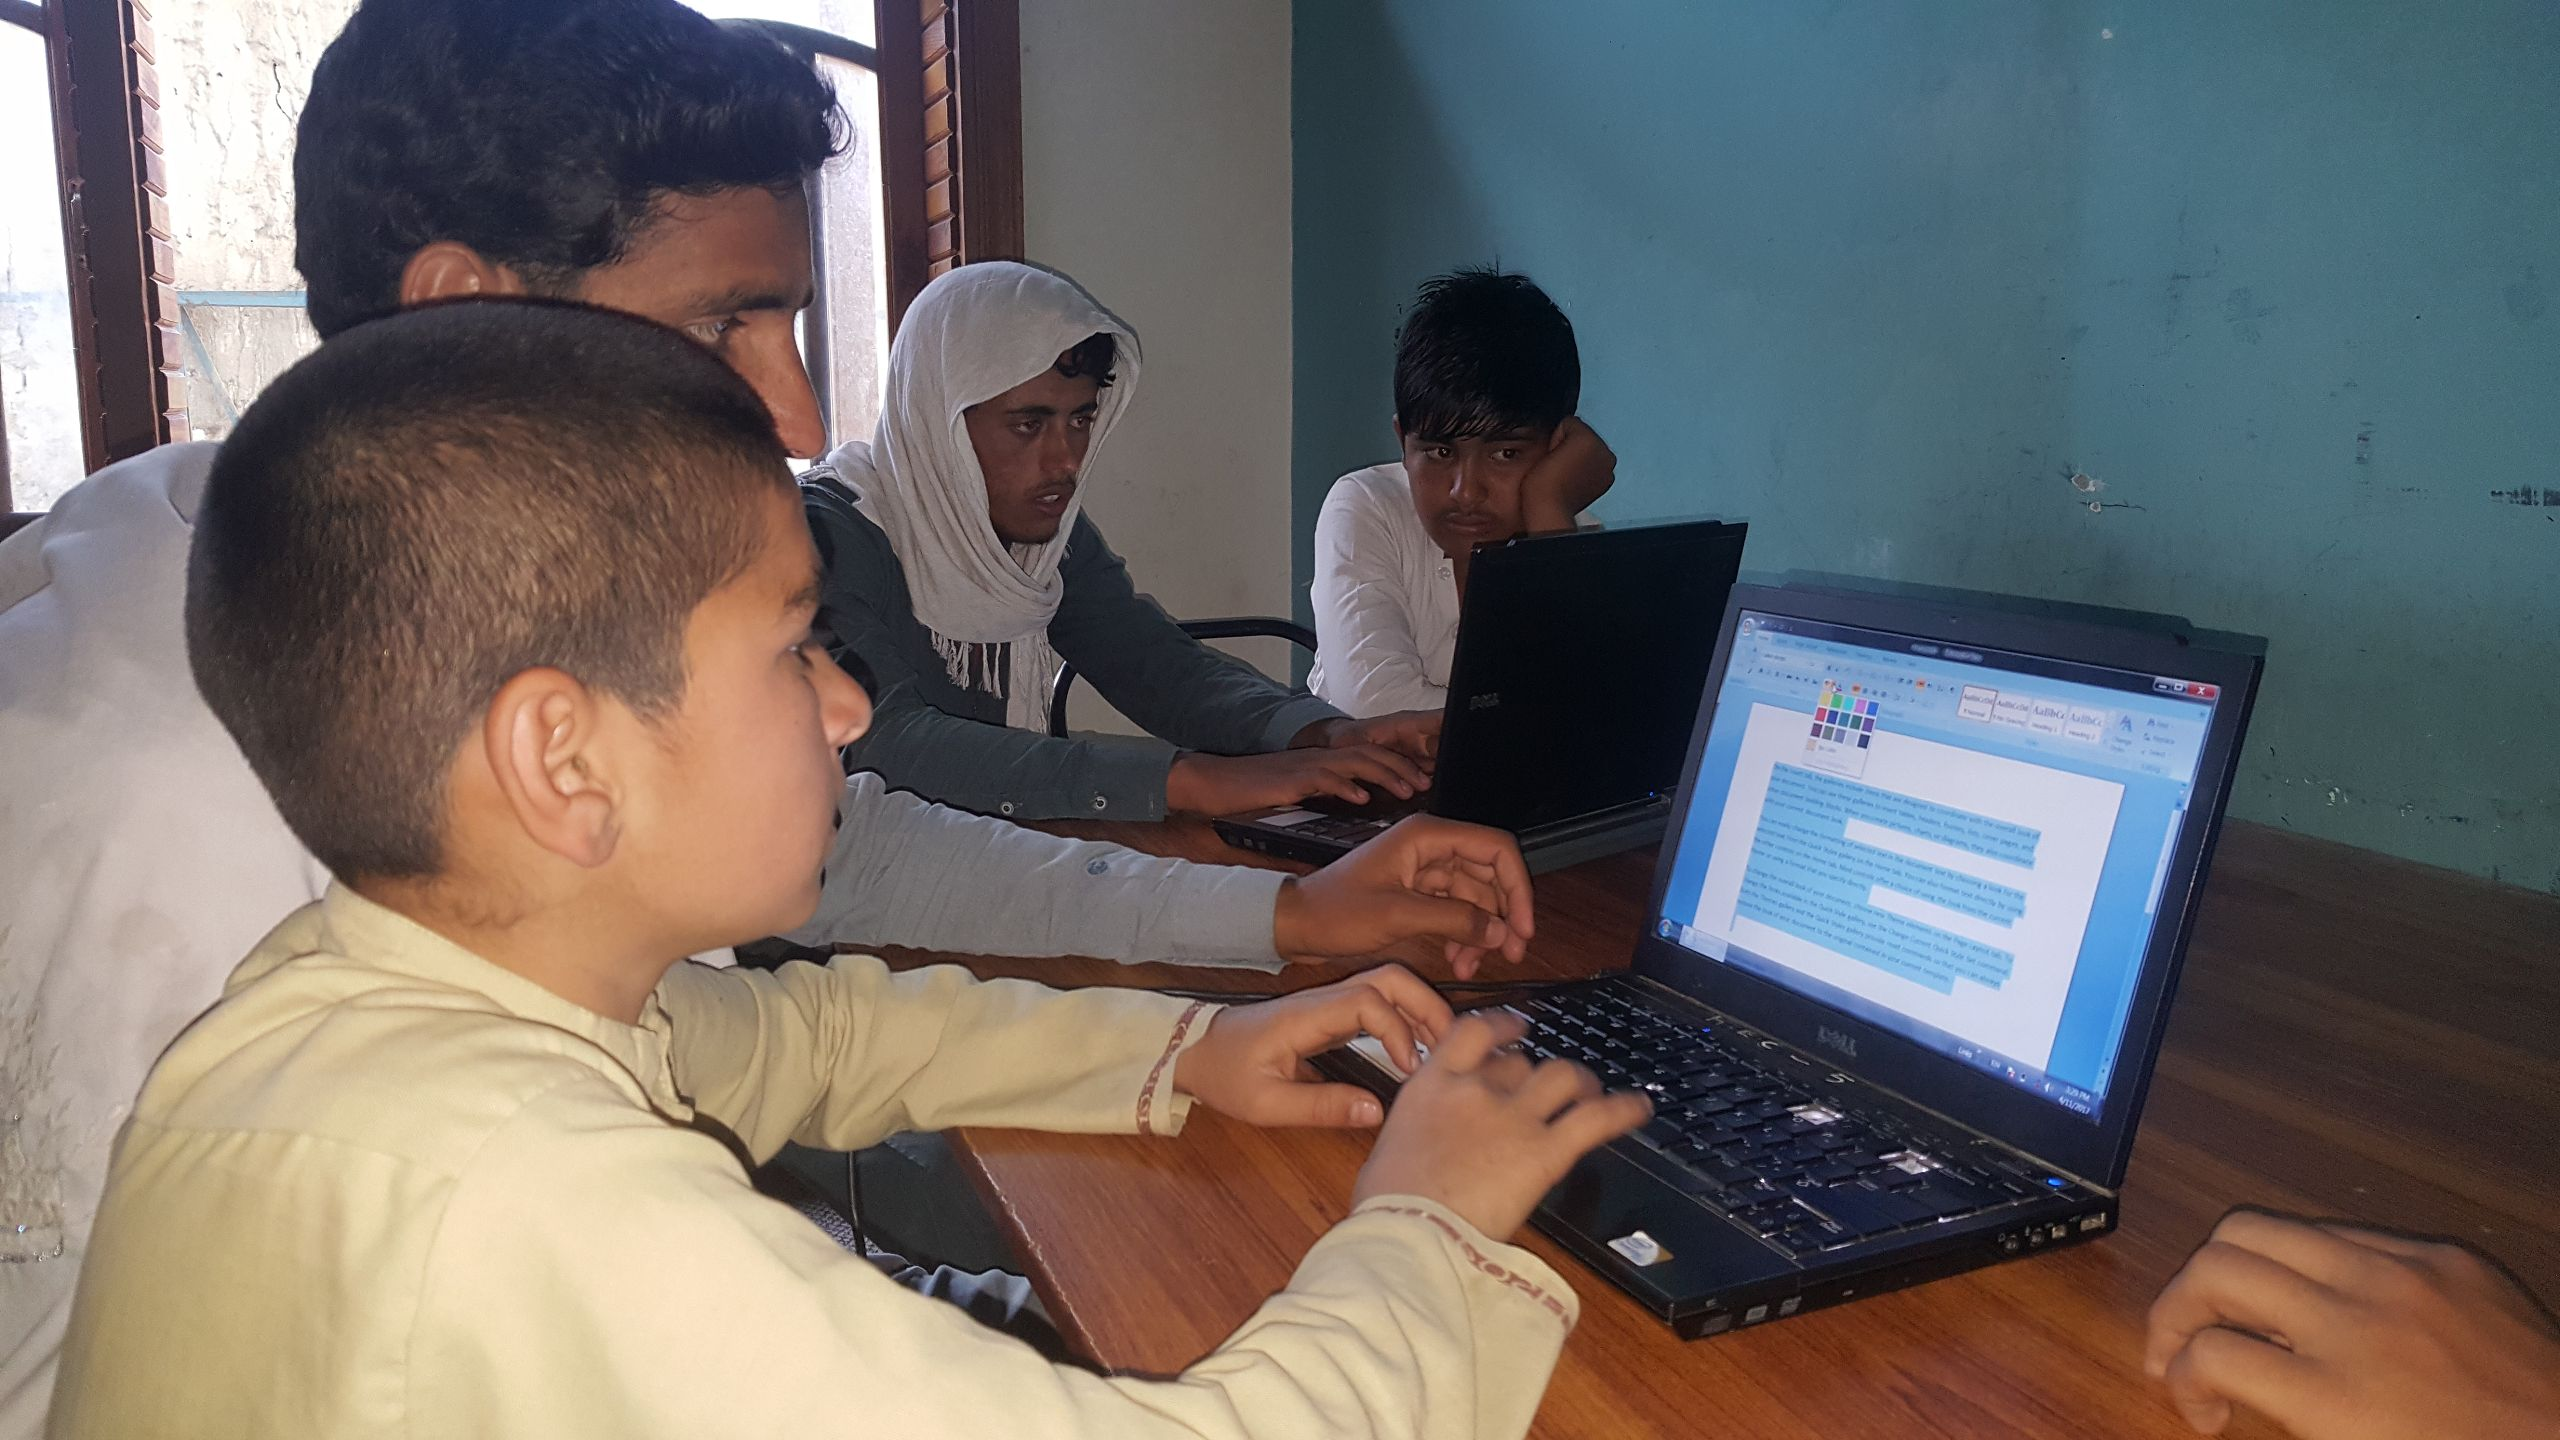 Students at a Computer Class